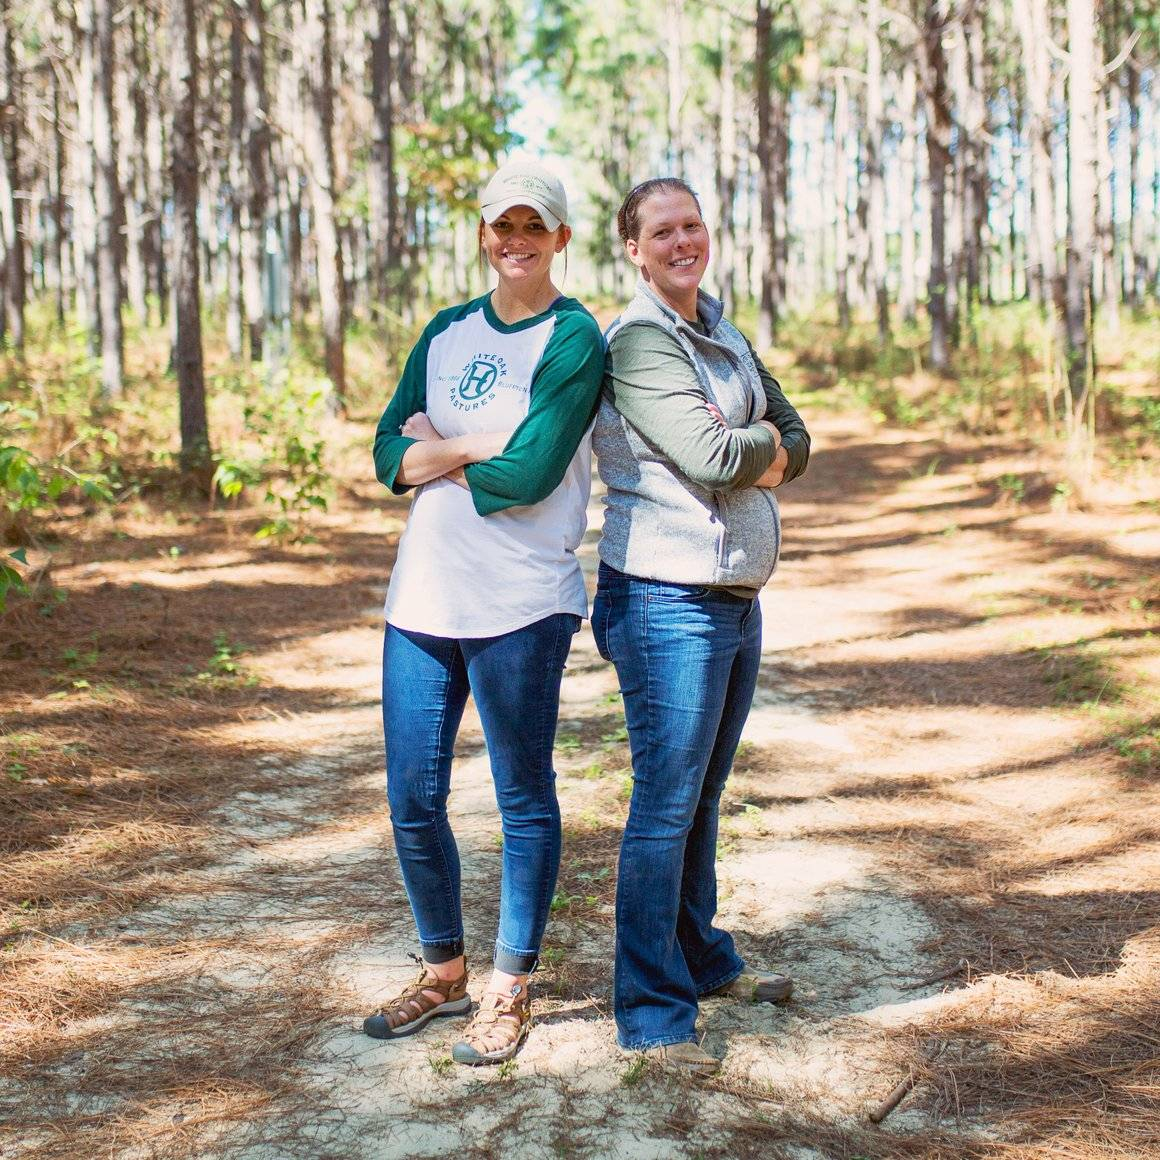 Episode 07 | Jenni Harris + Jodi Benoit  This farm family runs the town of Bluffton, Georgia bringing jobs, products and tourism to the community. Meet the ladies behind the innovation at White Oak Pastures.